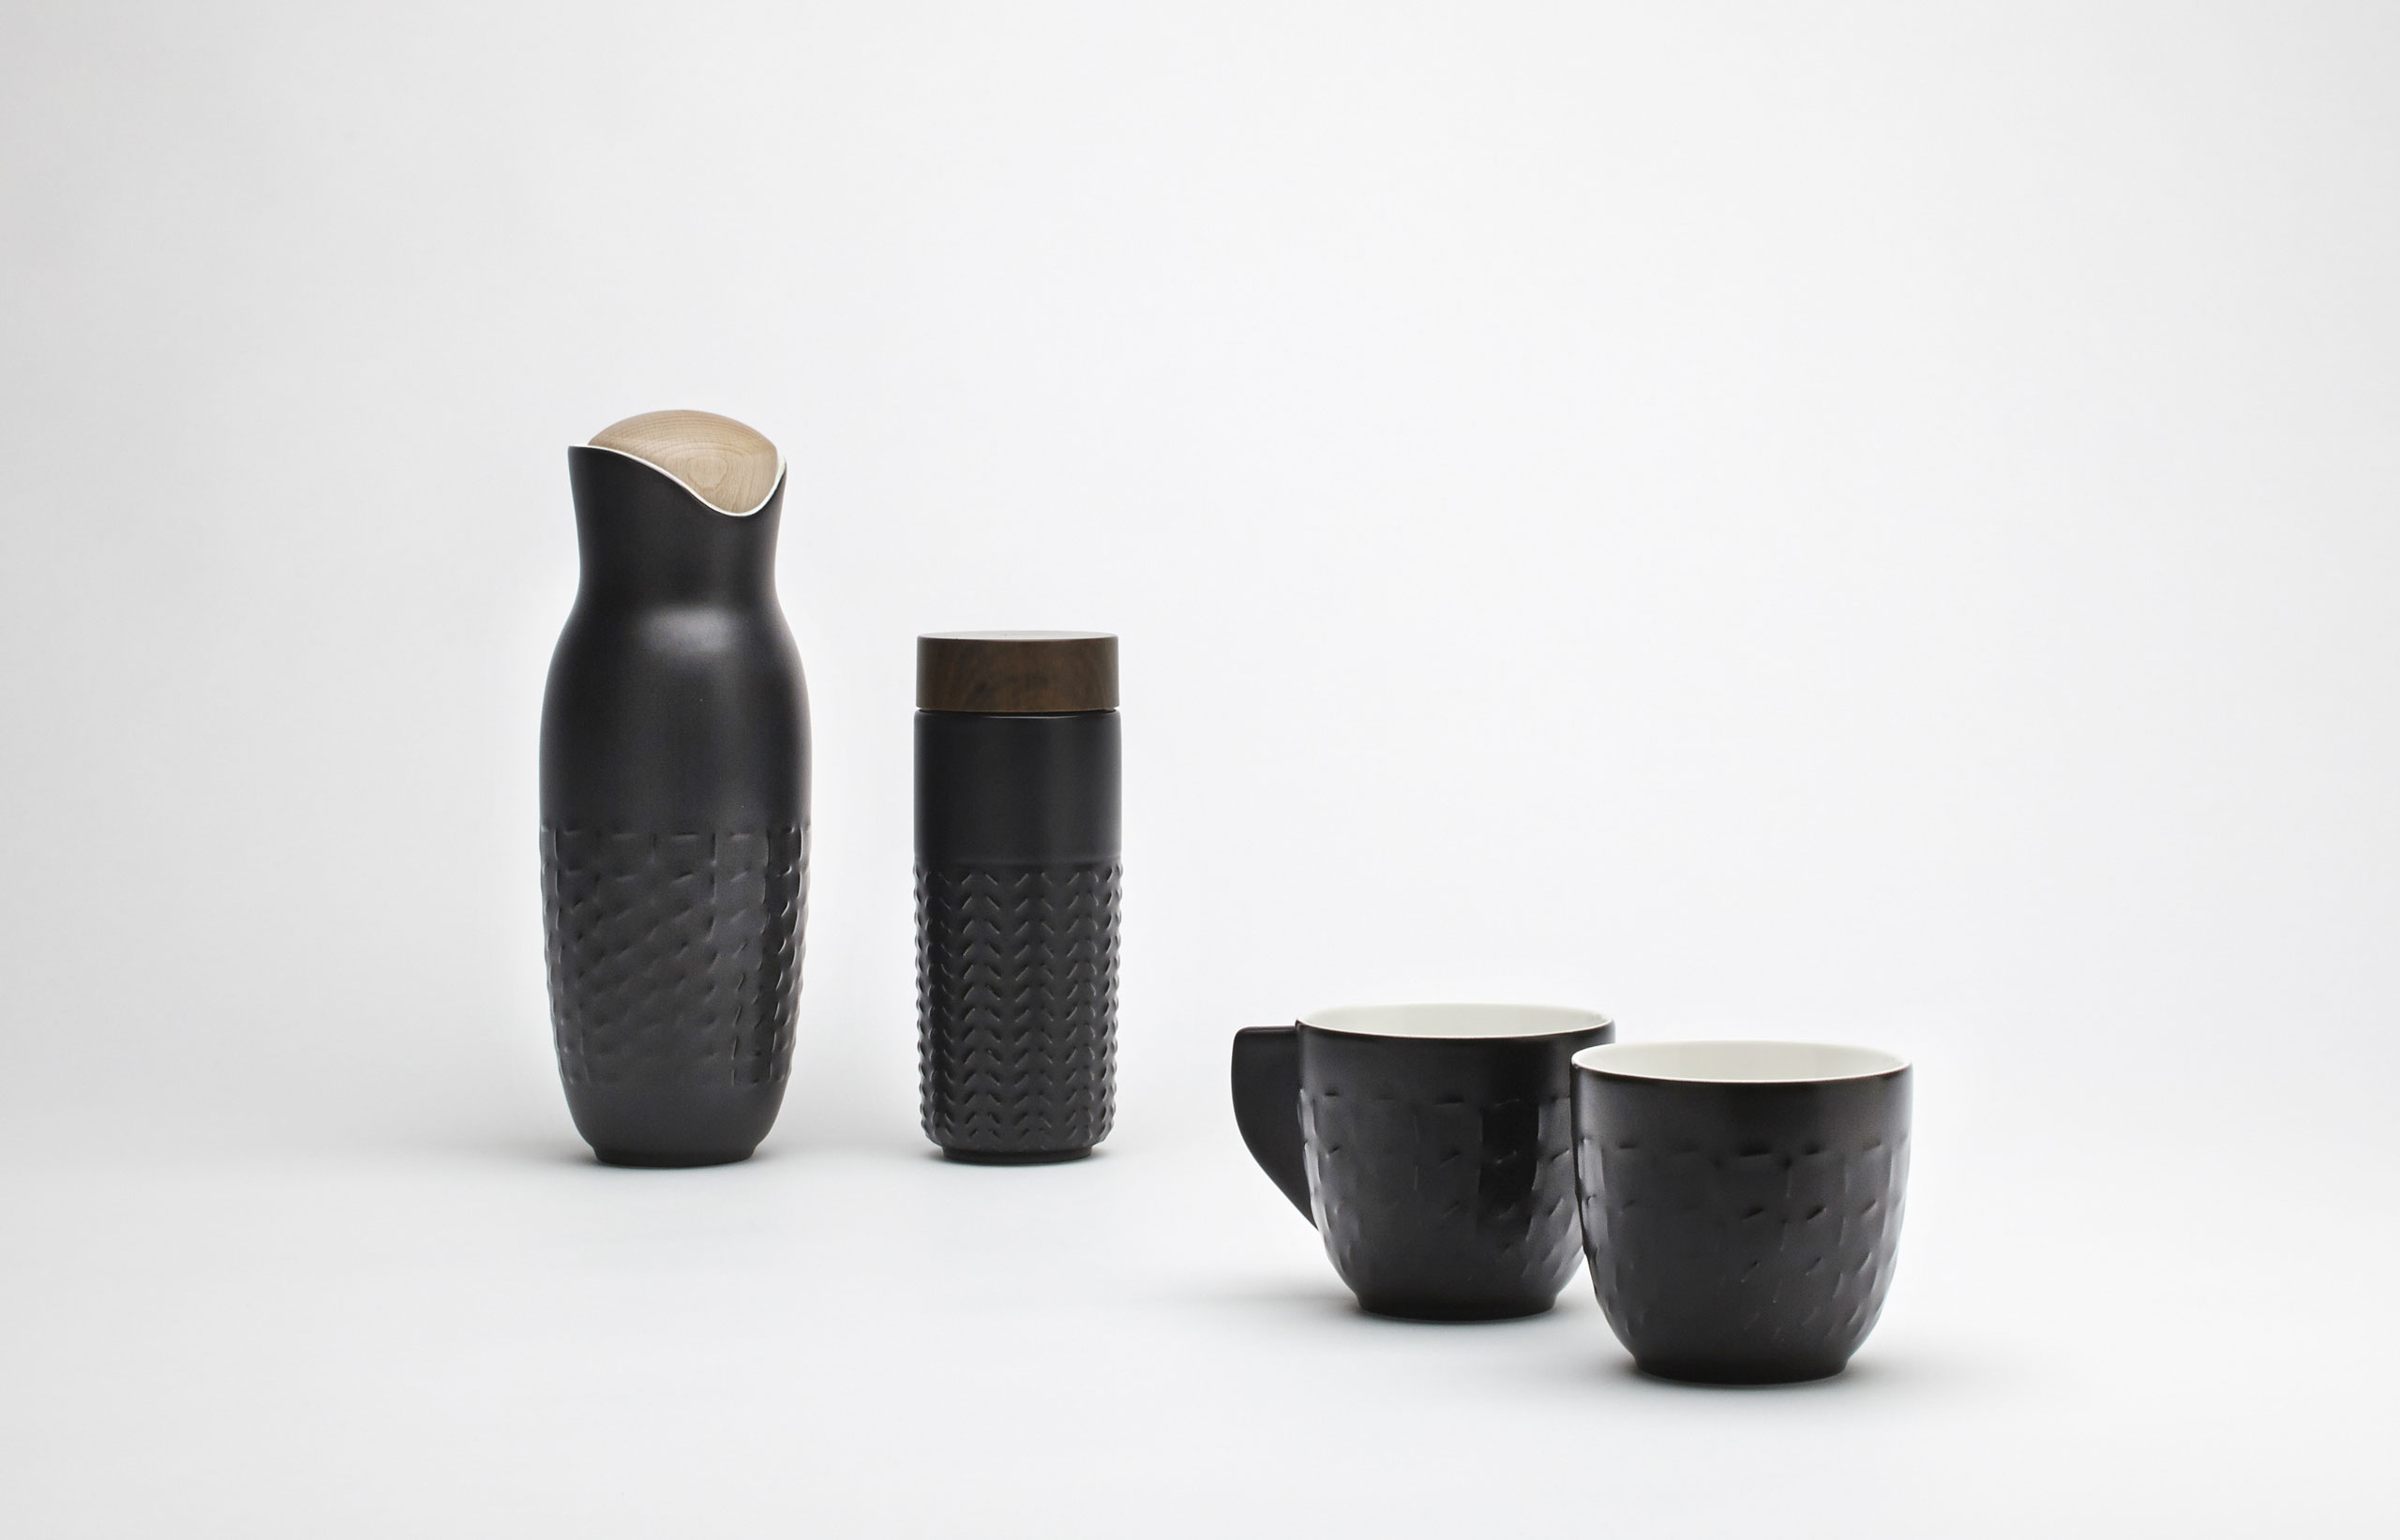 Urban Collection of ceramic tableware by Hangar Design Group for ACERA.